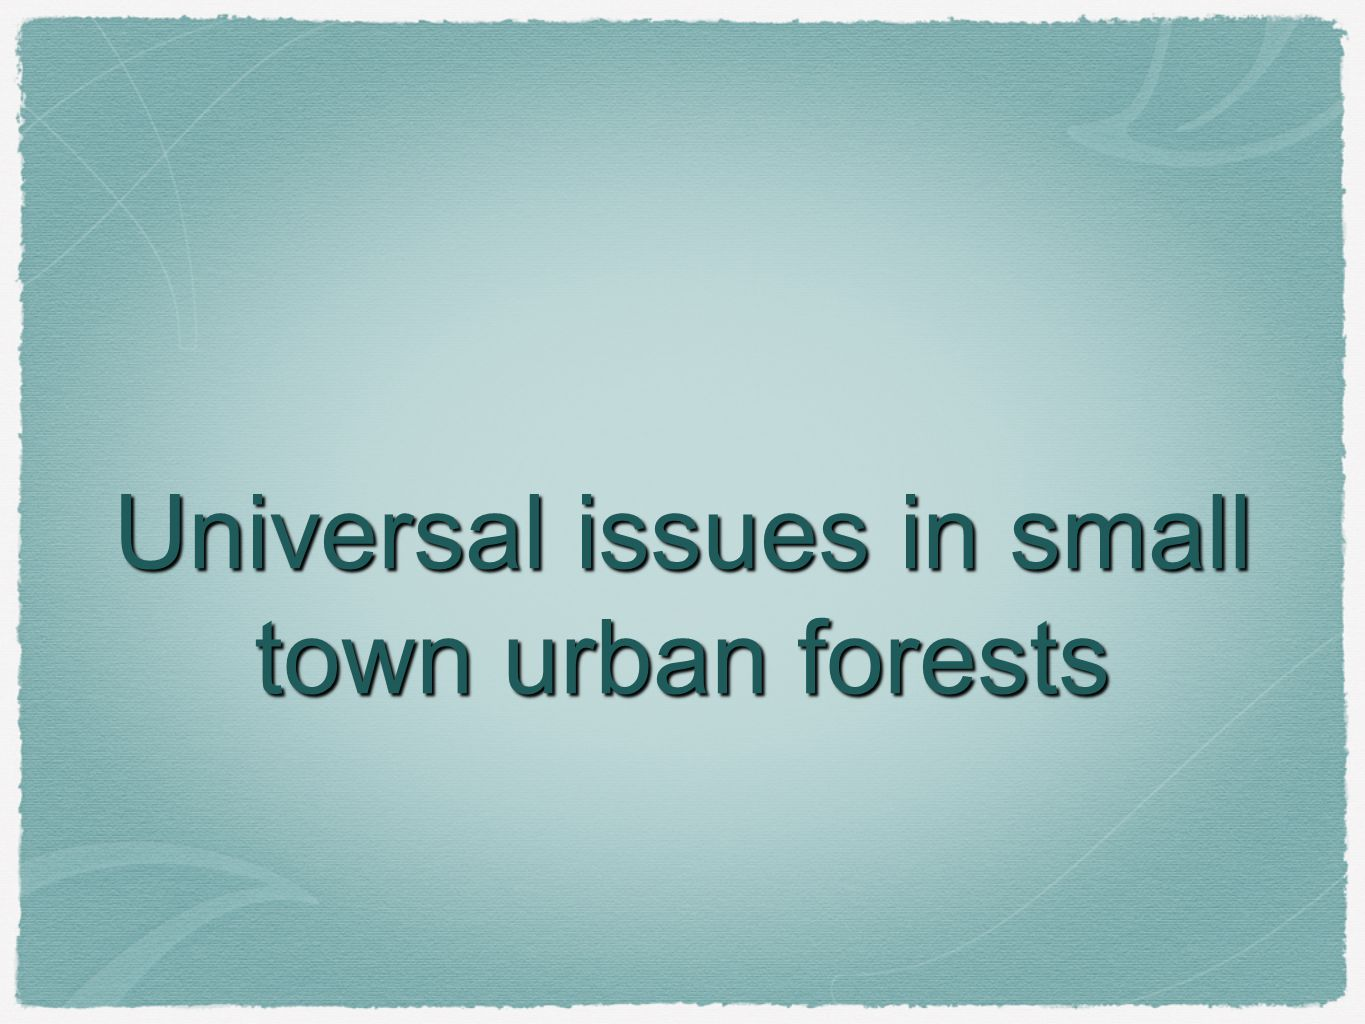 Universal issues in small town urban forests